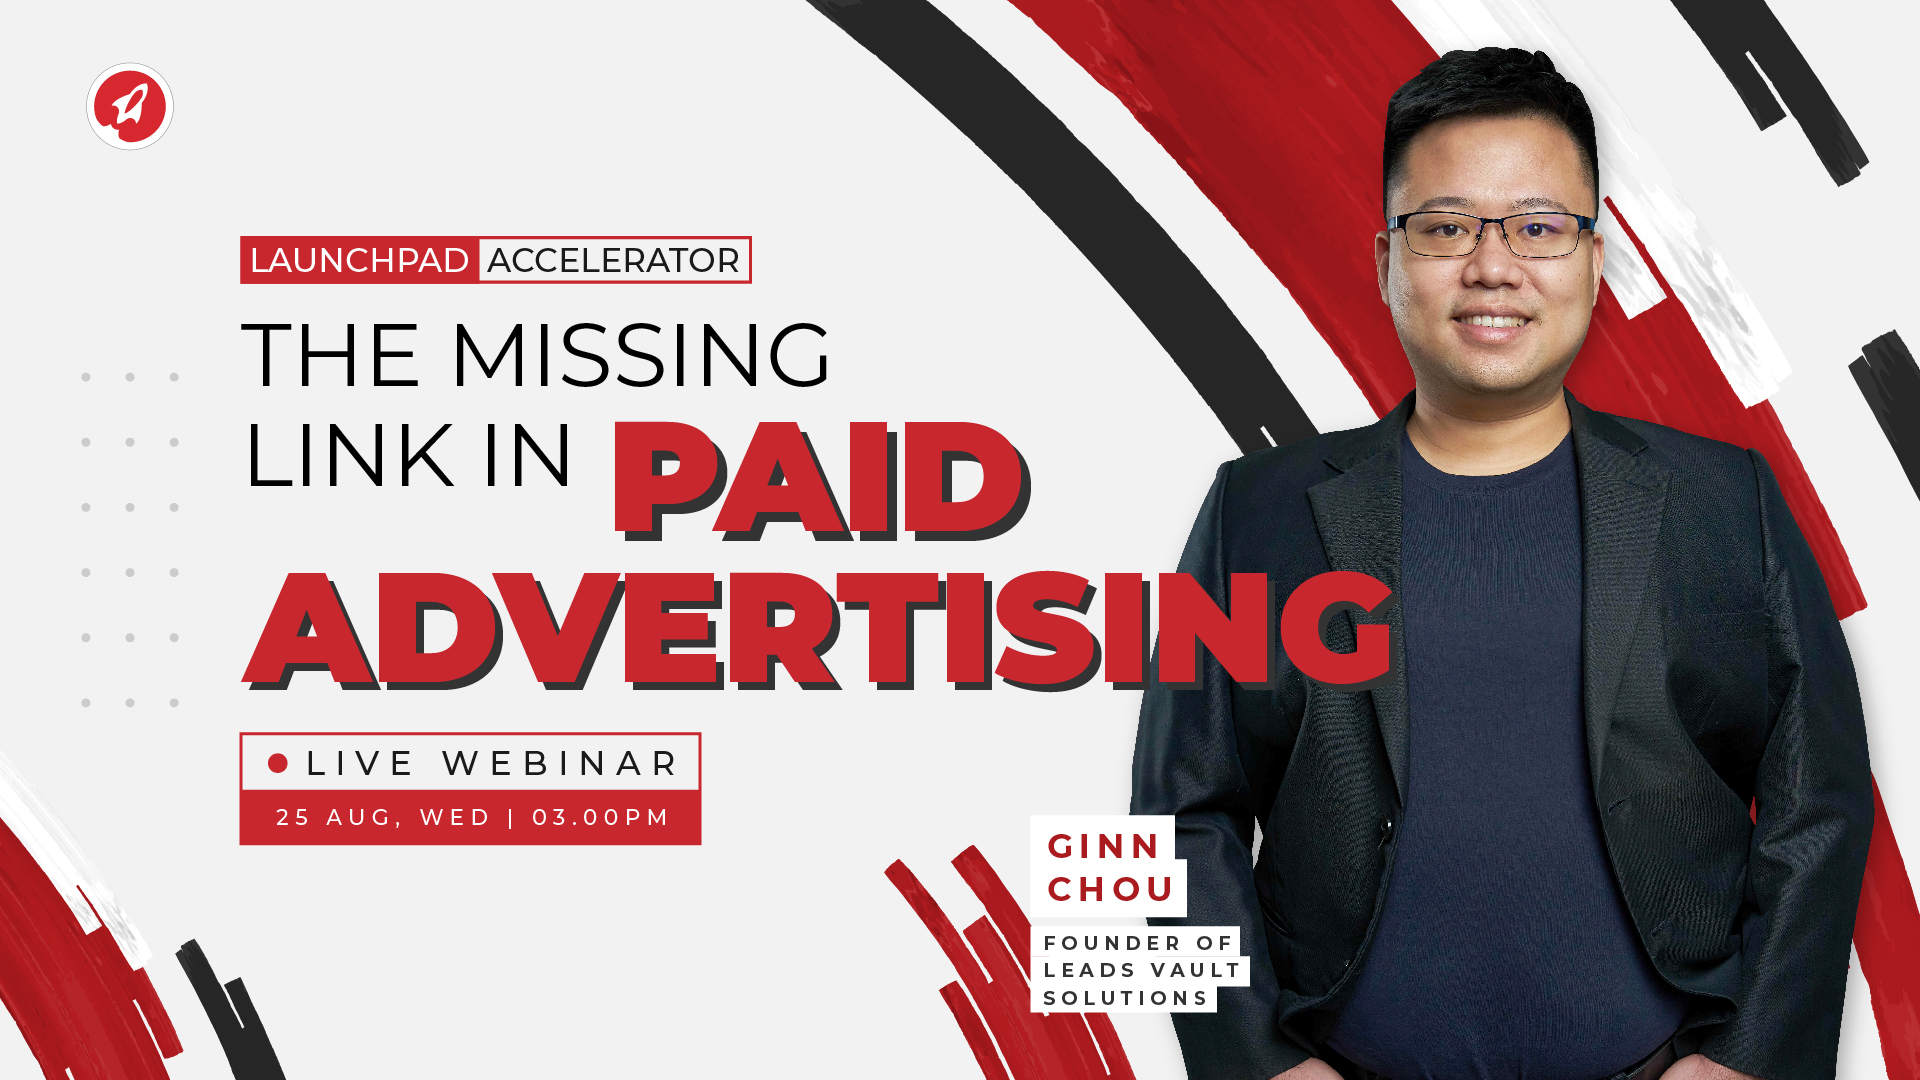 [LAS] The Missing Link In Paid Advertising-Main Image-SM&Landing-02